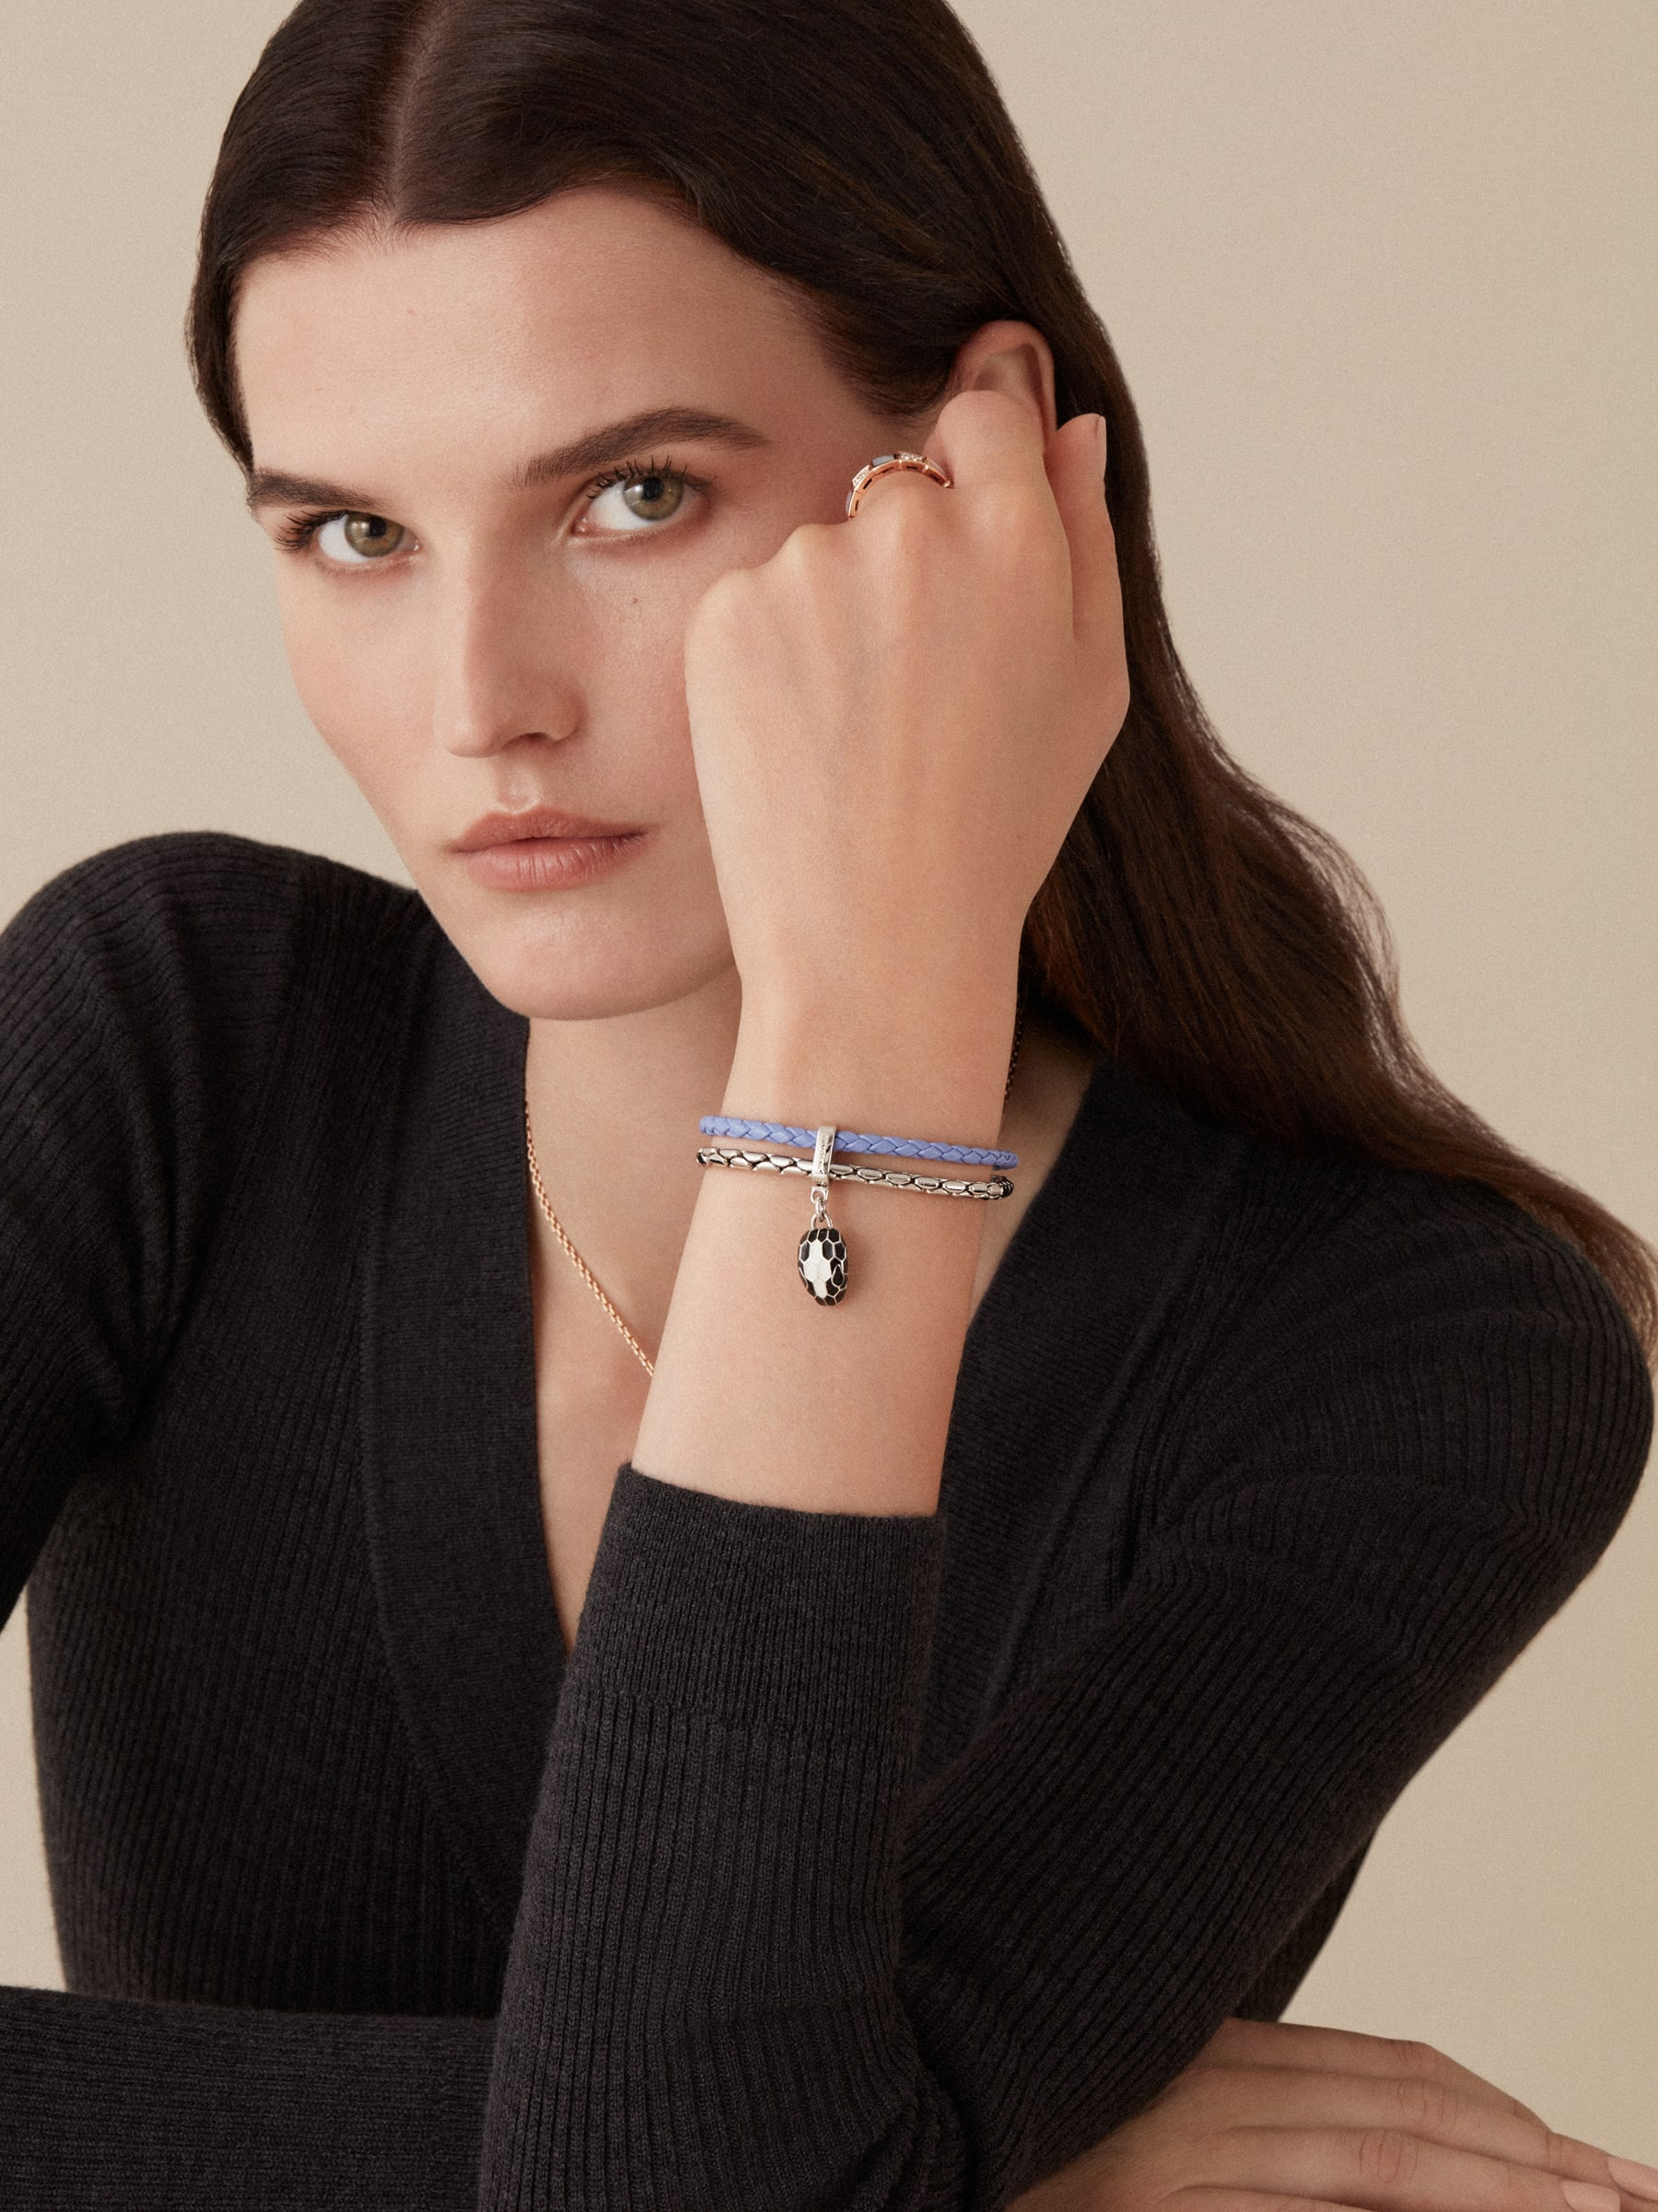 """Serpenti Forever"" bracelet in Lavander Amethyst lilac braided calf leather and palladum plated brass snake body-shaped chain with the iconic snakehead charm in black and white agate enamel, and black enamel eyes with a magnetic clasp closure. SerpBraidChain-WCL-LA image 2"